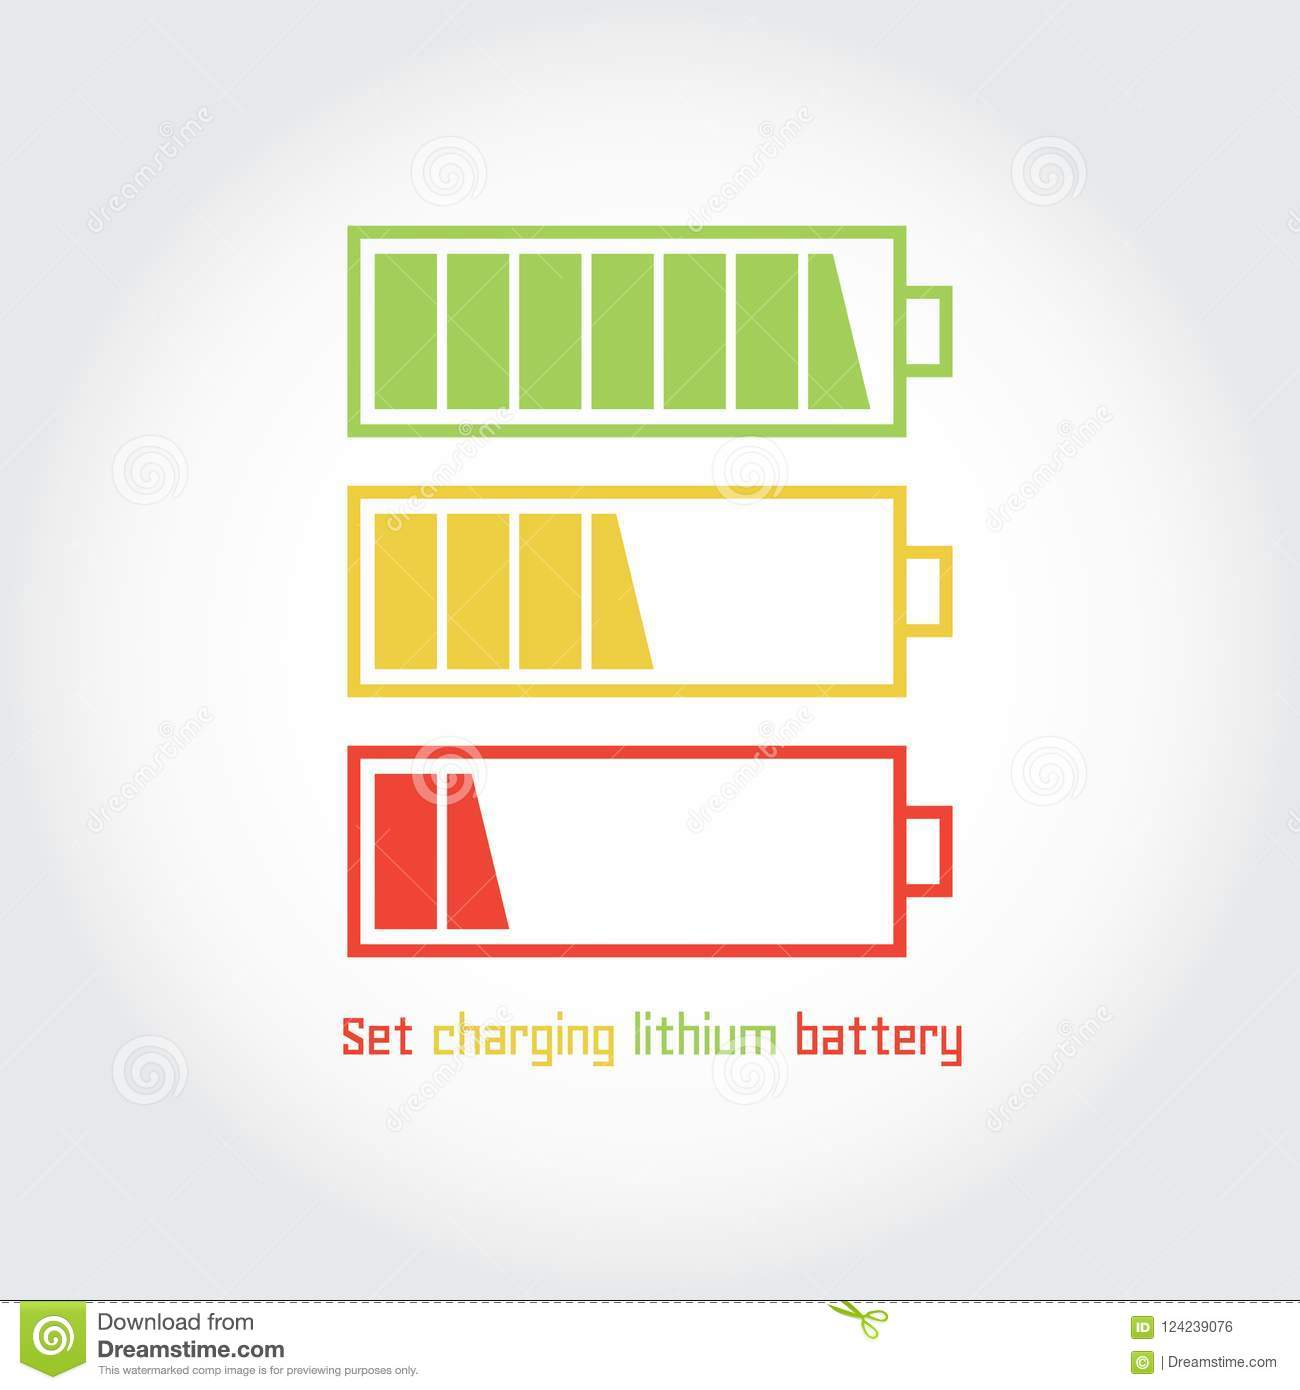 Set Charging Lithium Battery Stock Vector Illustration Of Charger